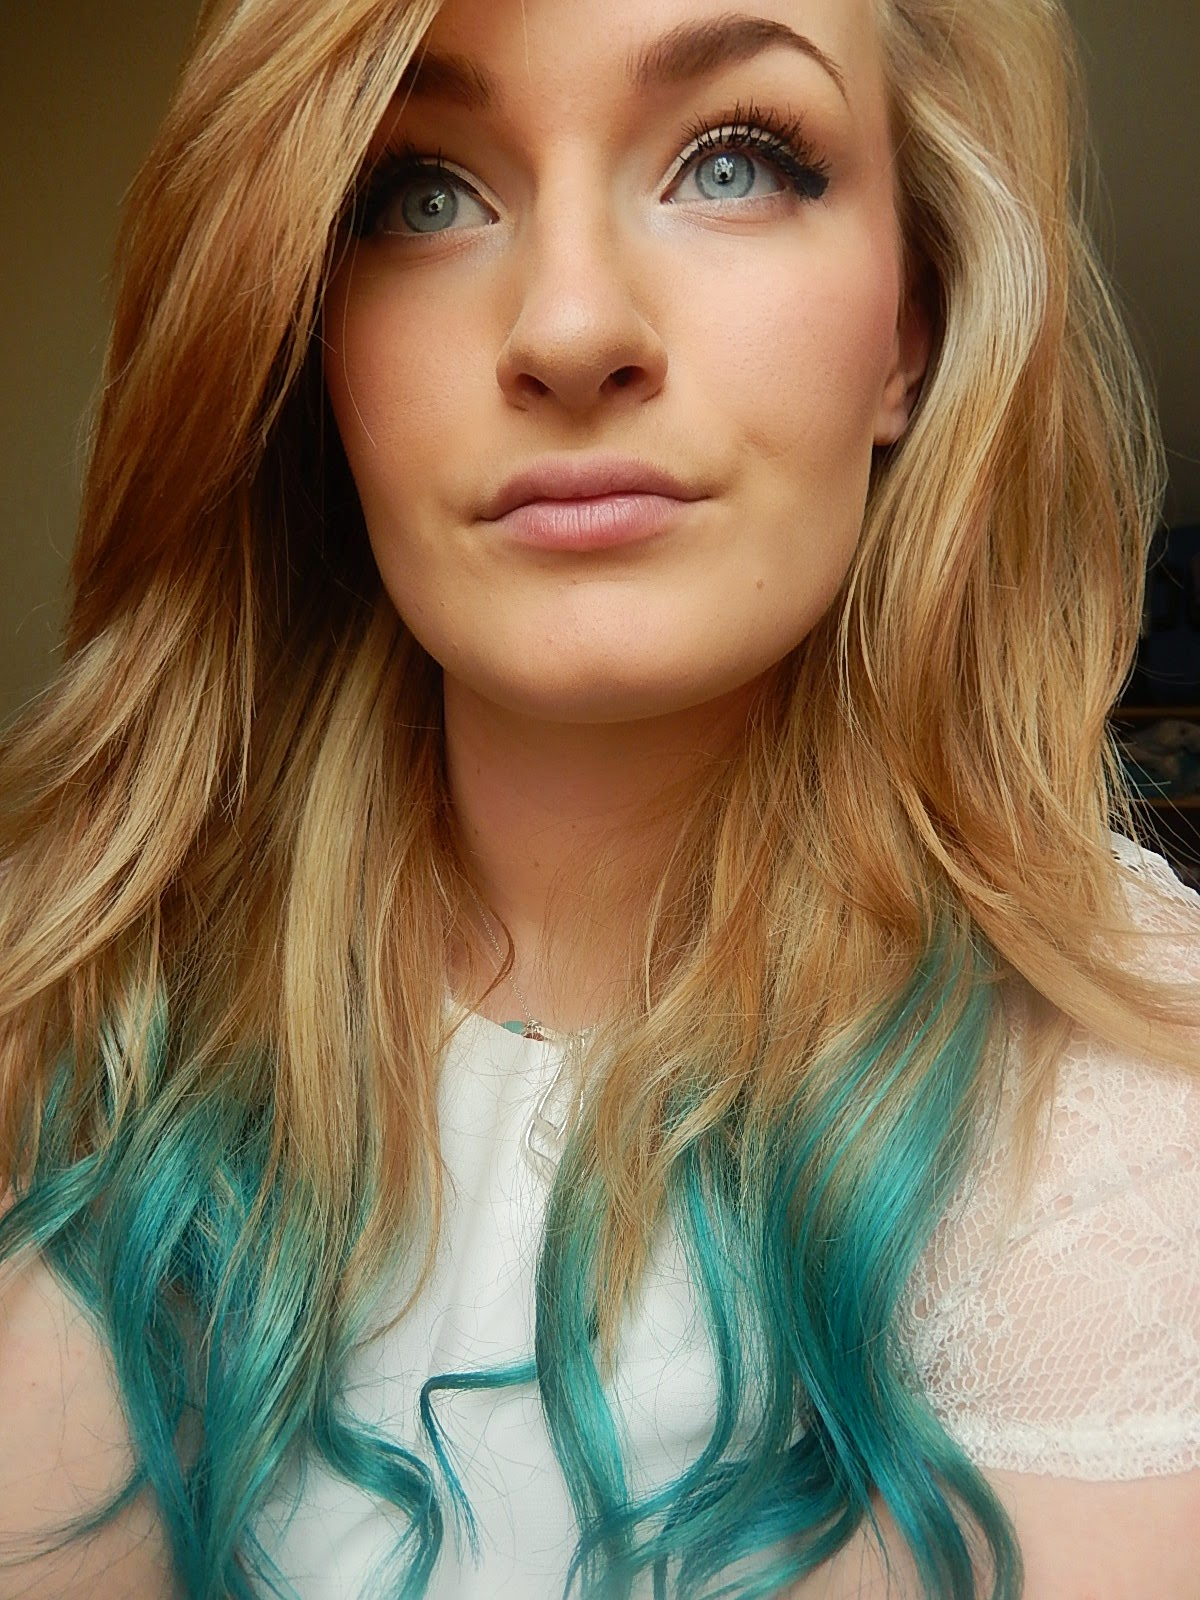 Mermaid dip dye hair from Beka's Beauty. UK Beauty Blogger. Blue dip dye hair